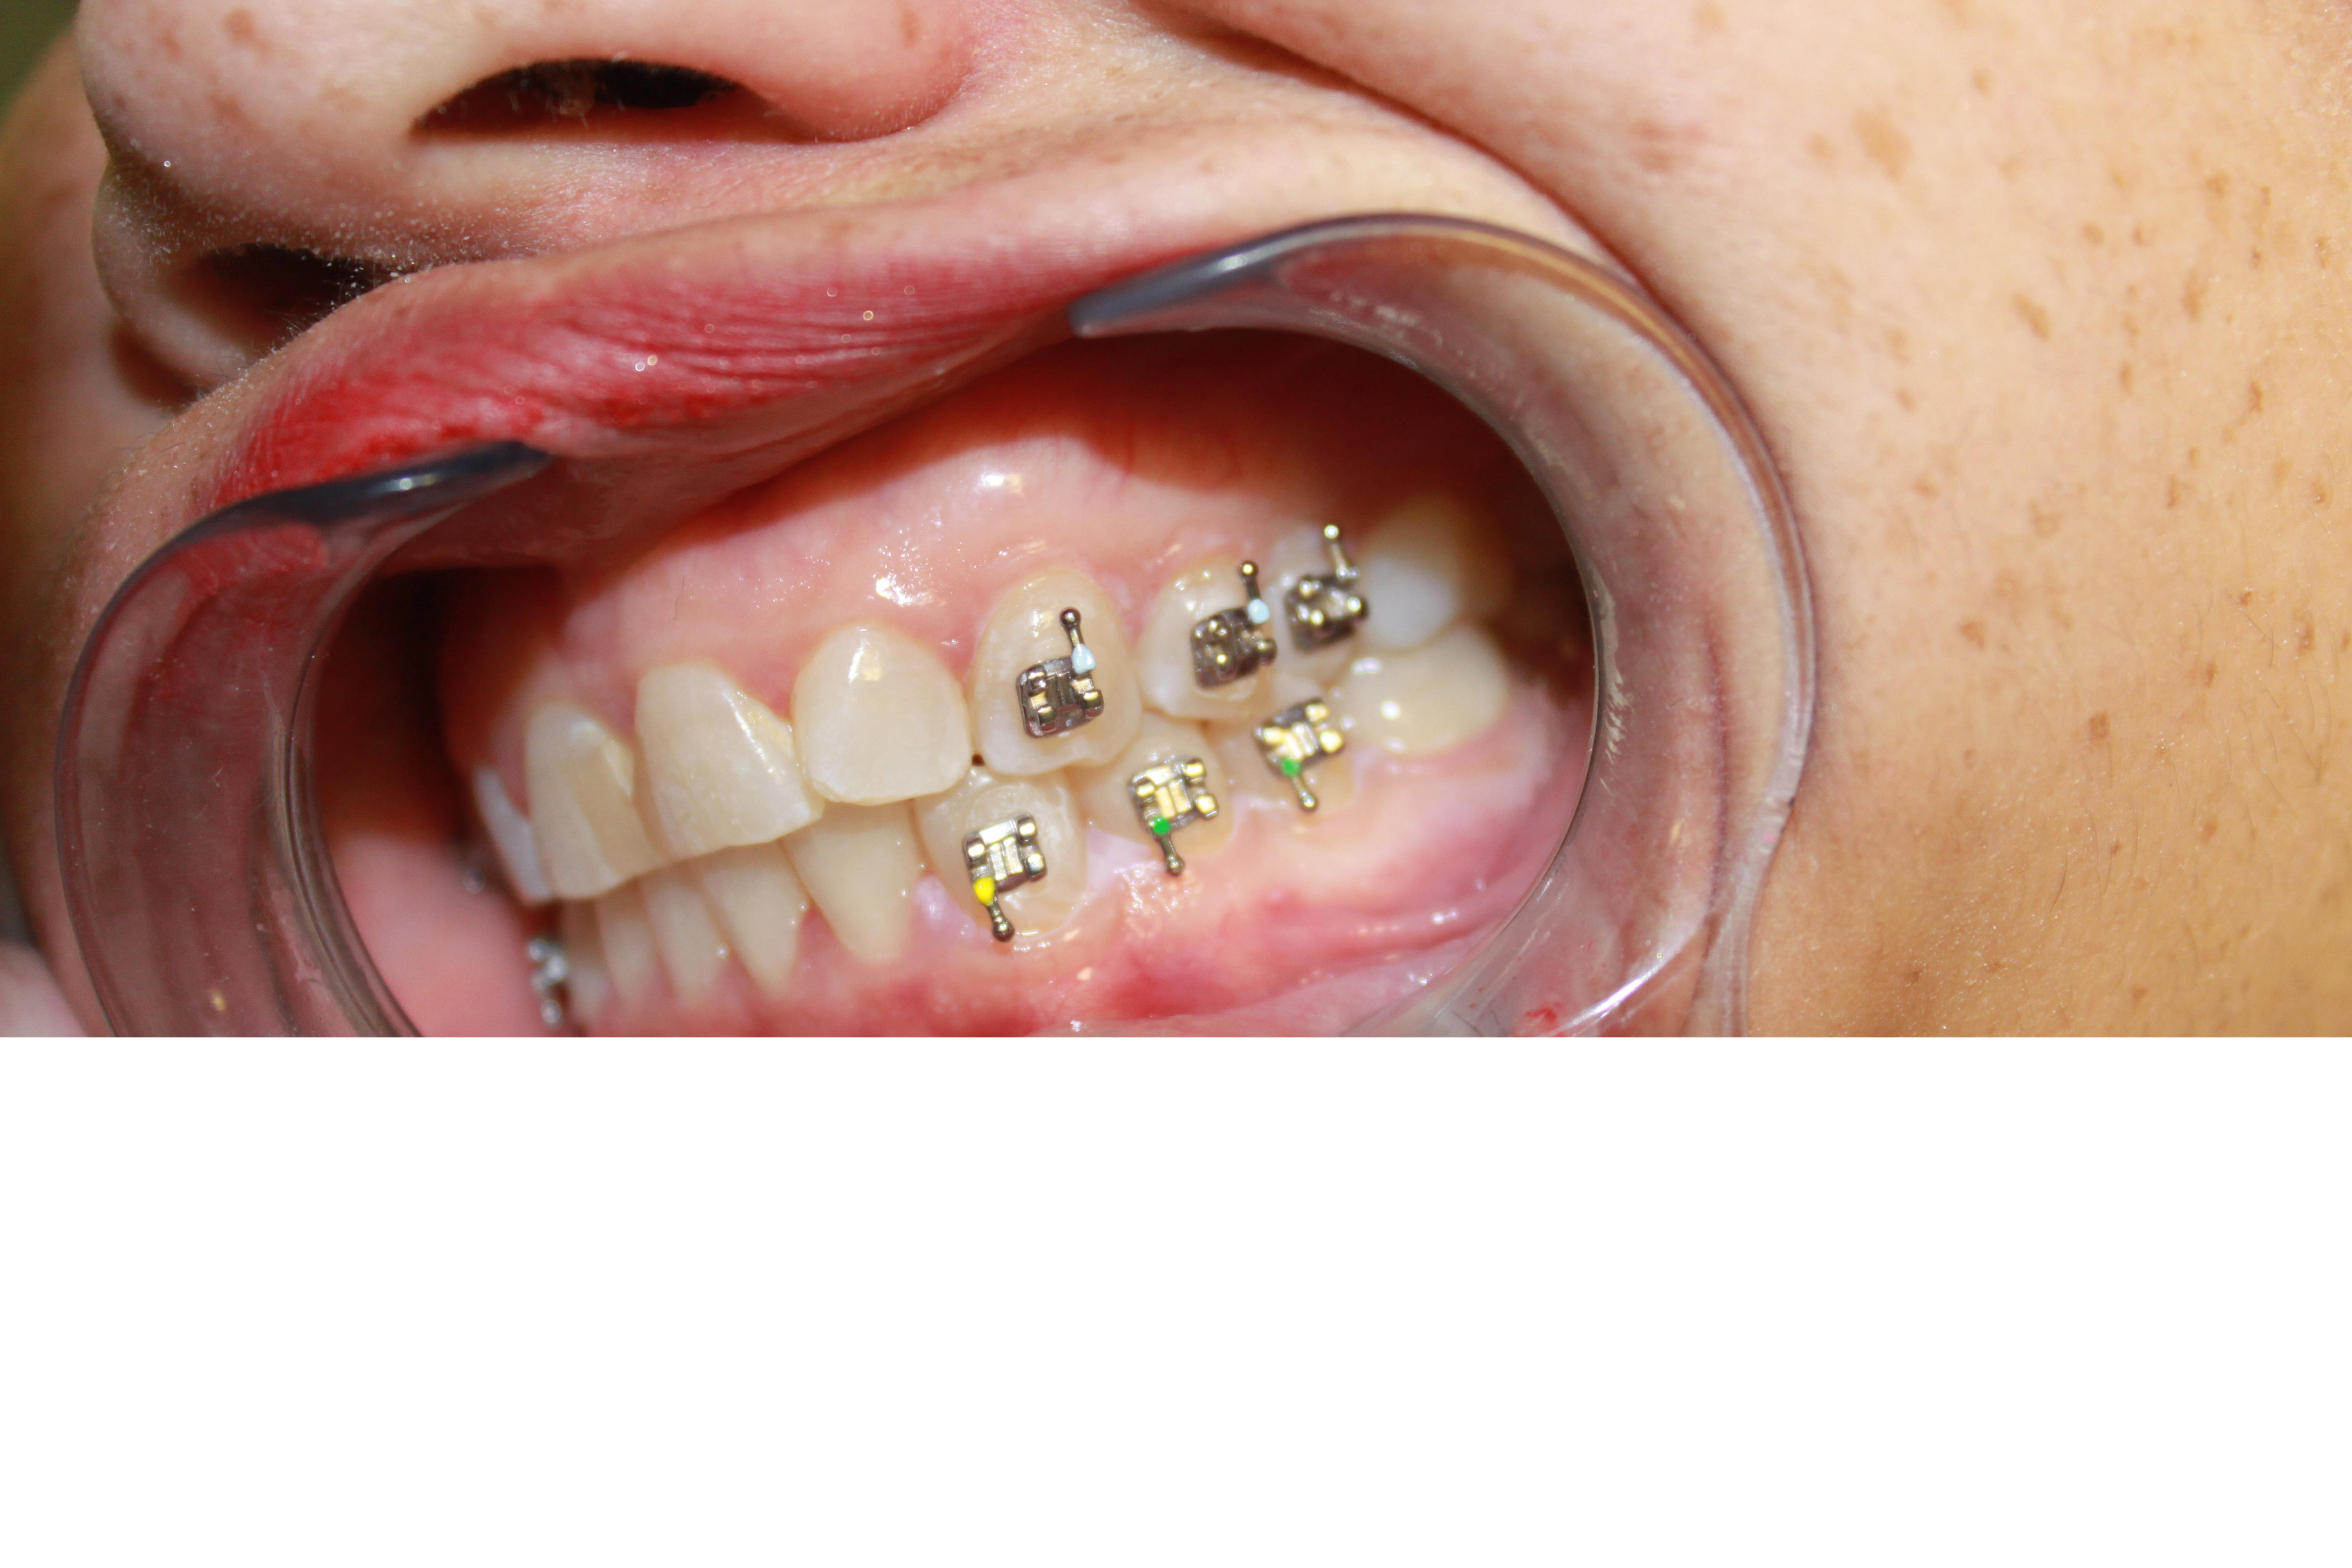 Excellent Ojw Orthodontic Jaw Wiring Clearer Speech Wiring 101 Orsalhahutechinfo